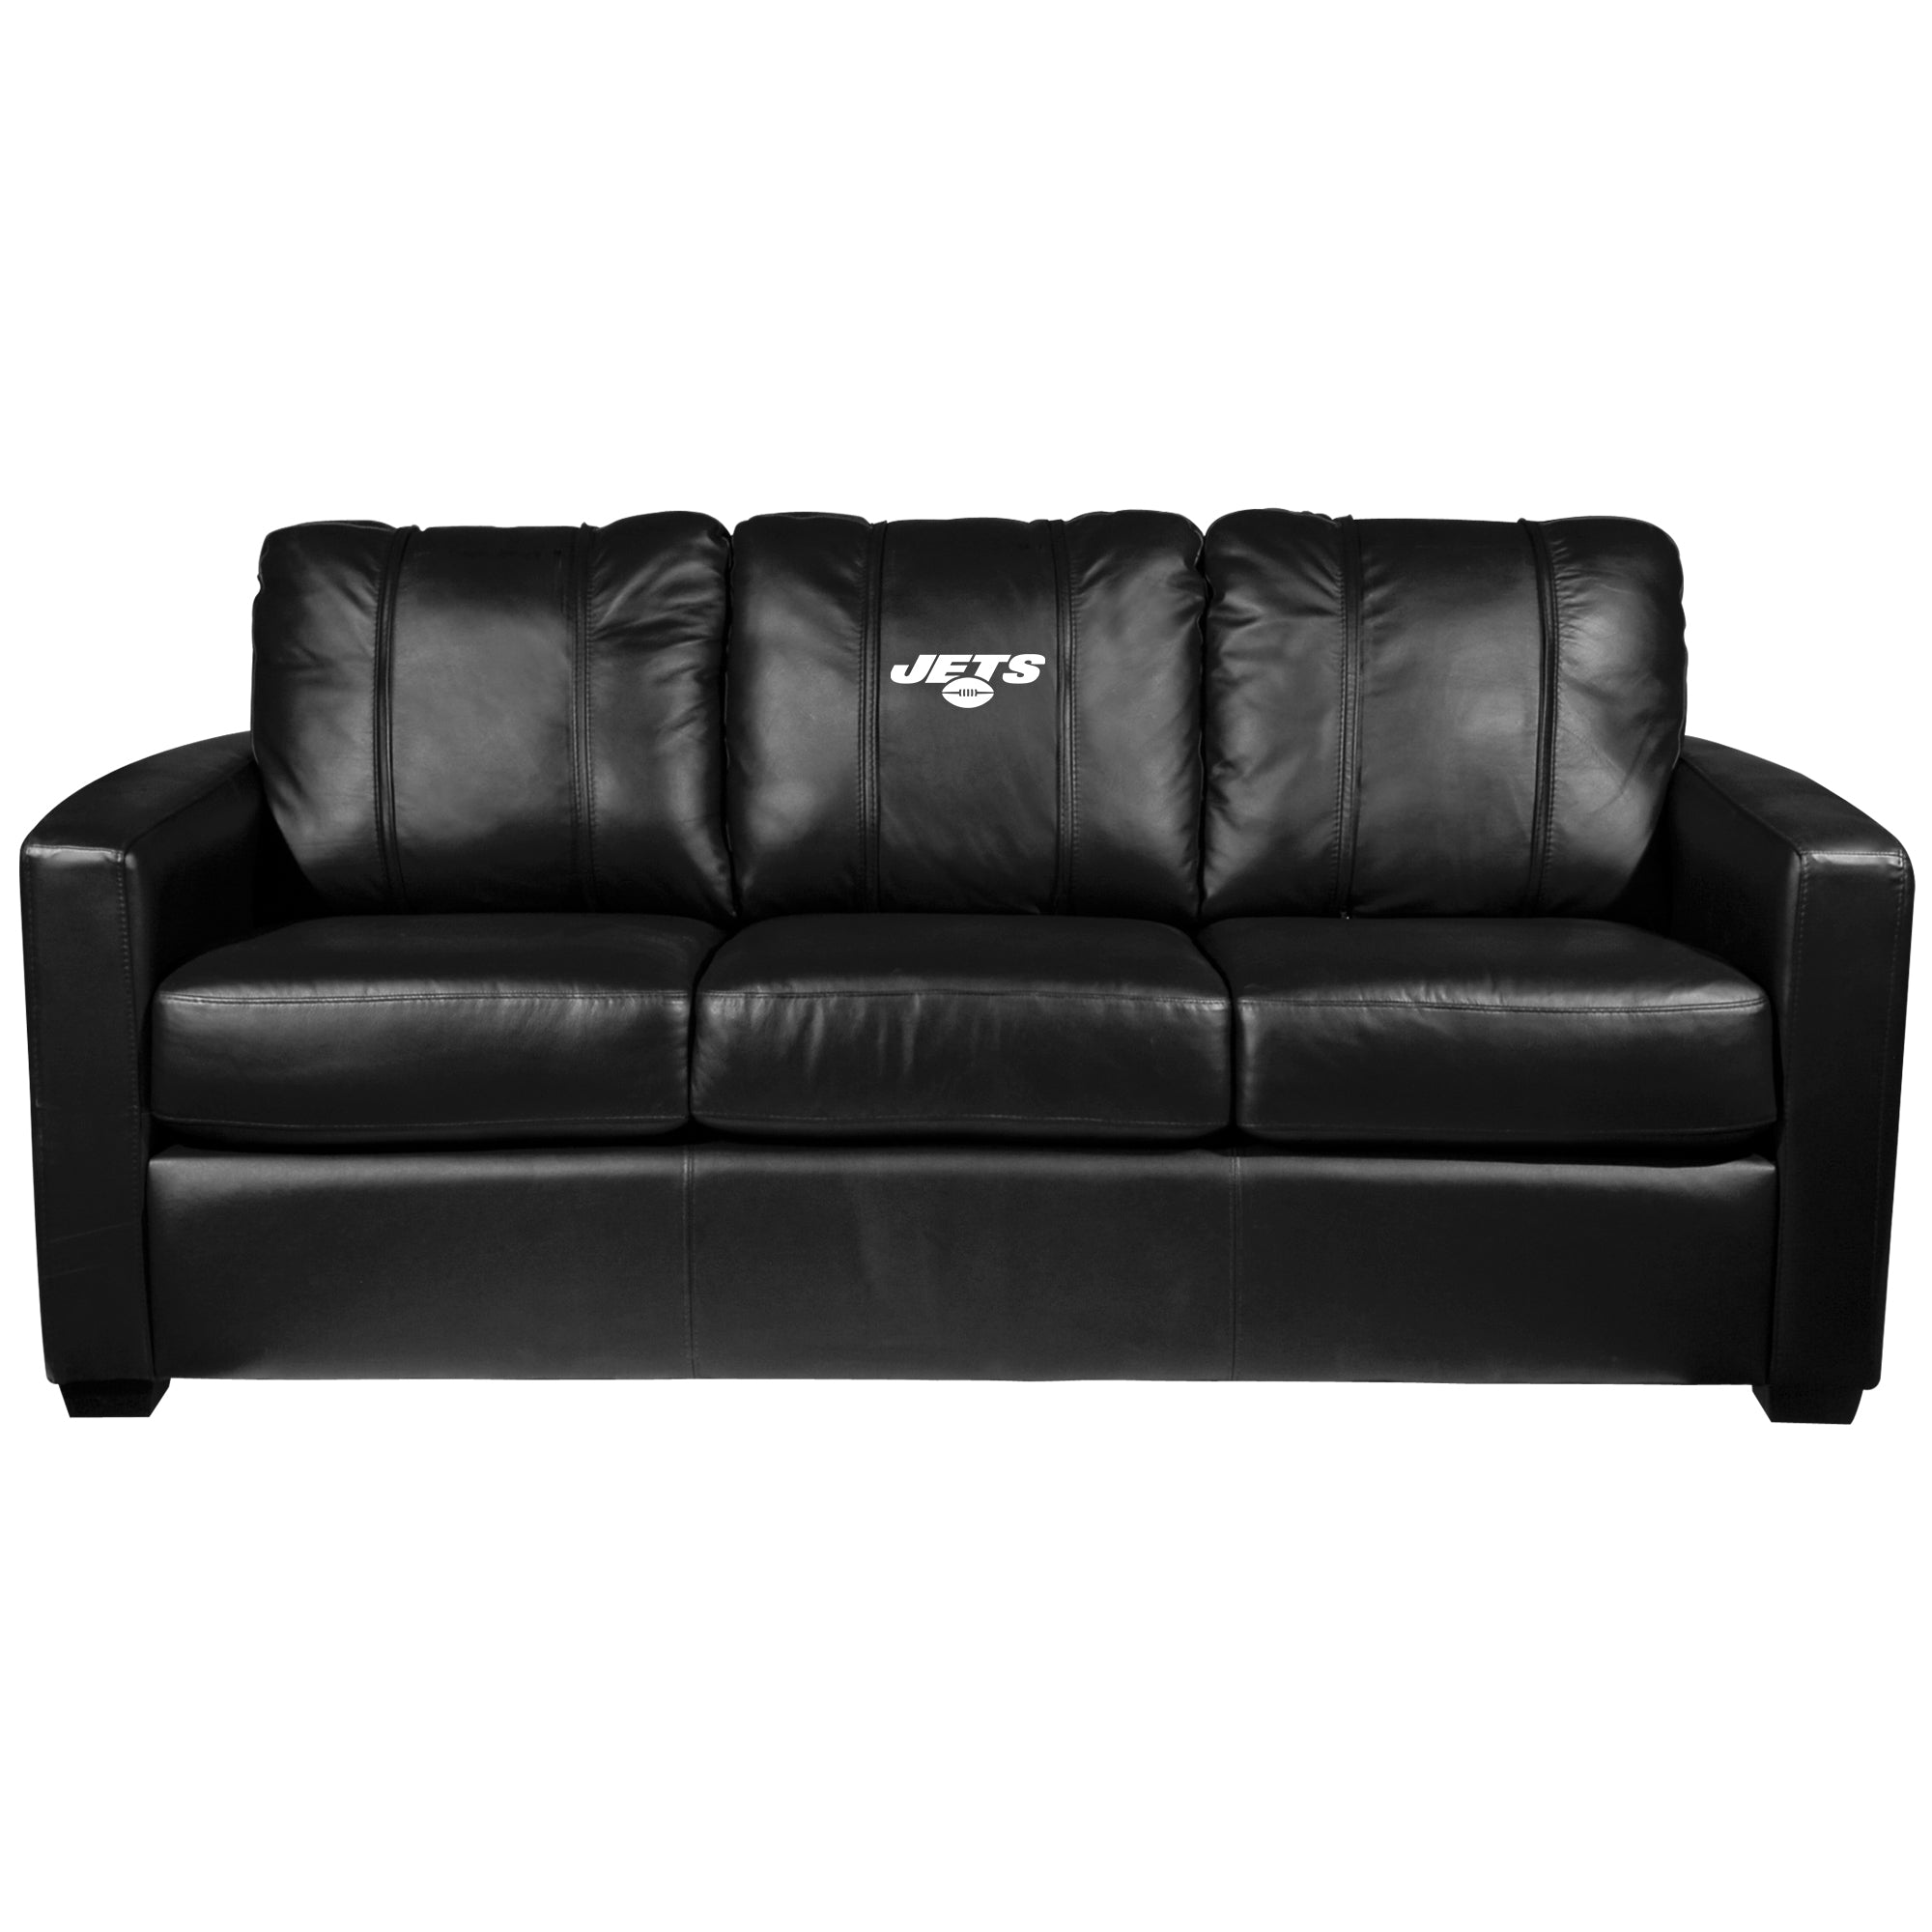 Silver Sofa with  New York Jets Secondary Logo